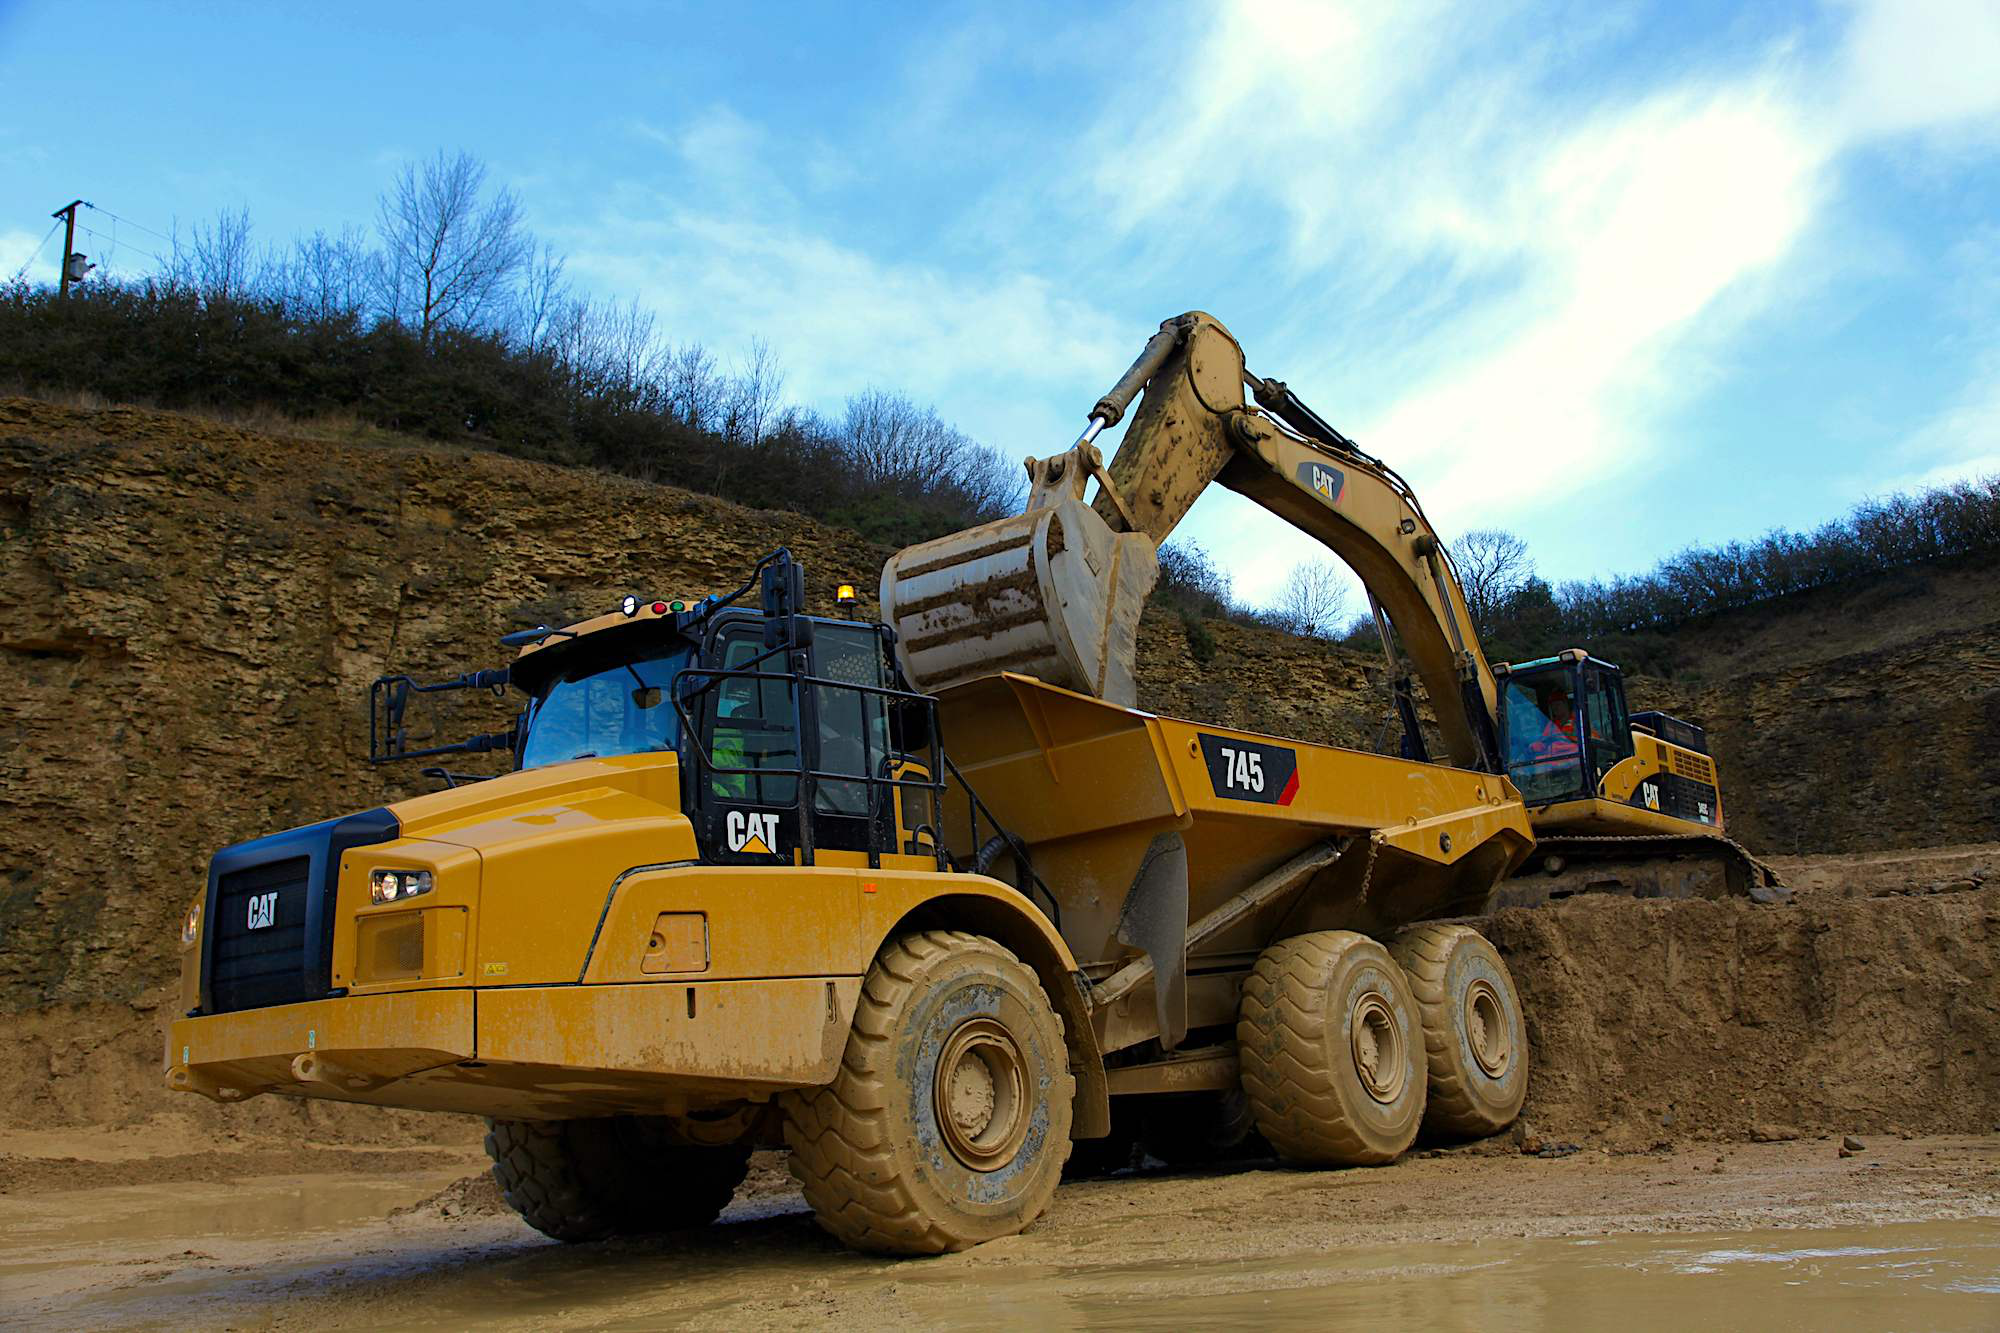 Cat Unveils Redesigned 745 Articulated Truck With Larger